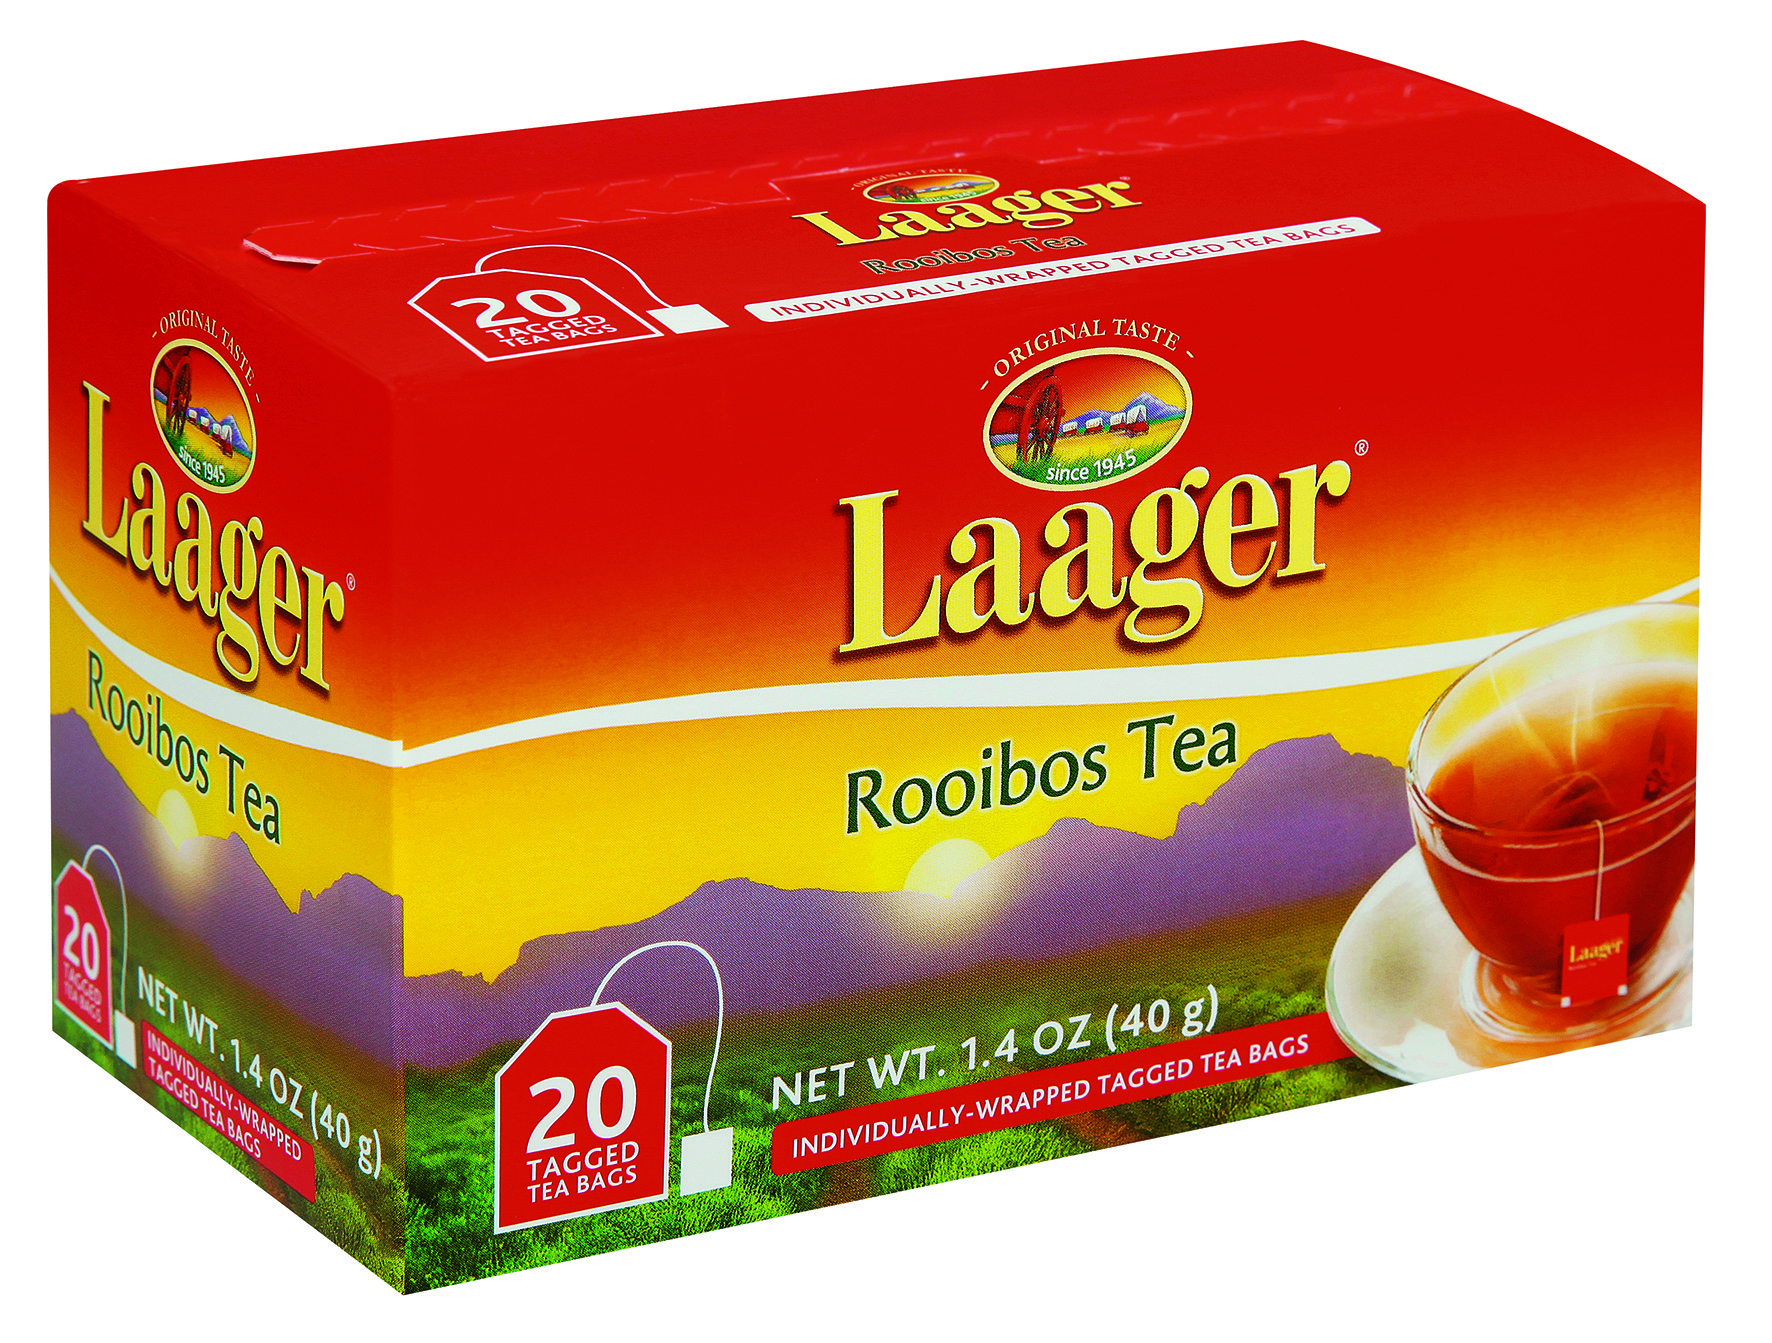 Laager Pure Rooibos 20's tagged teabags